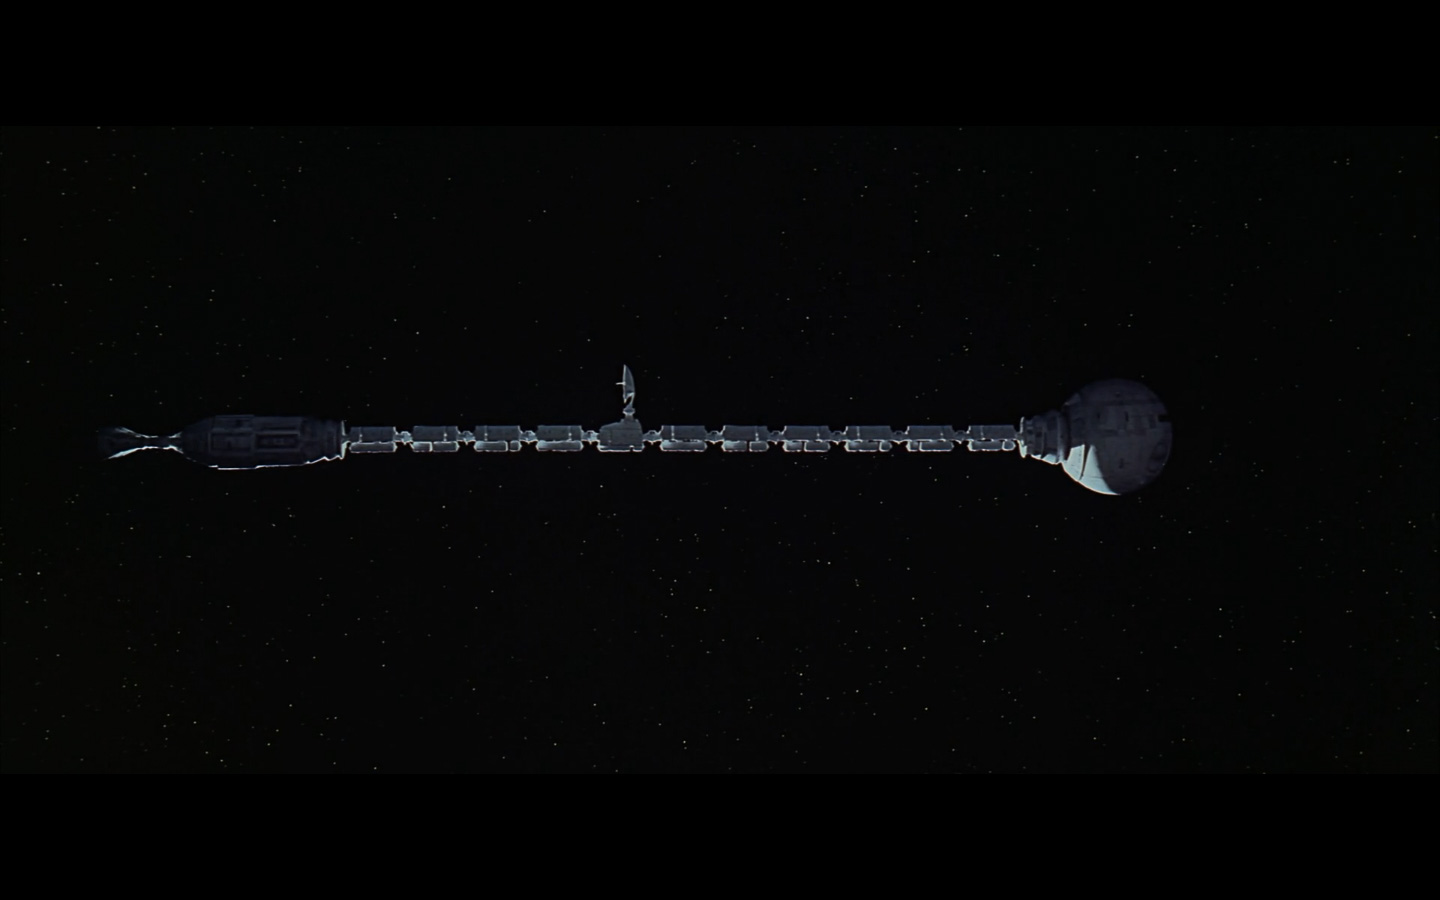 2001 Space Odyssey Cinematography-271.jpg